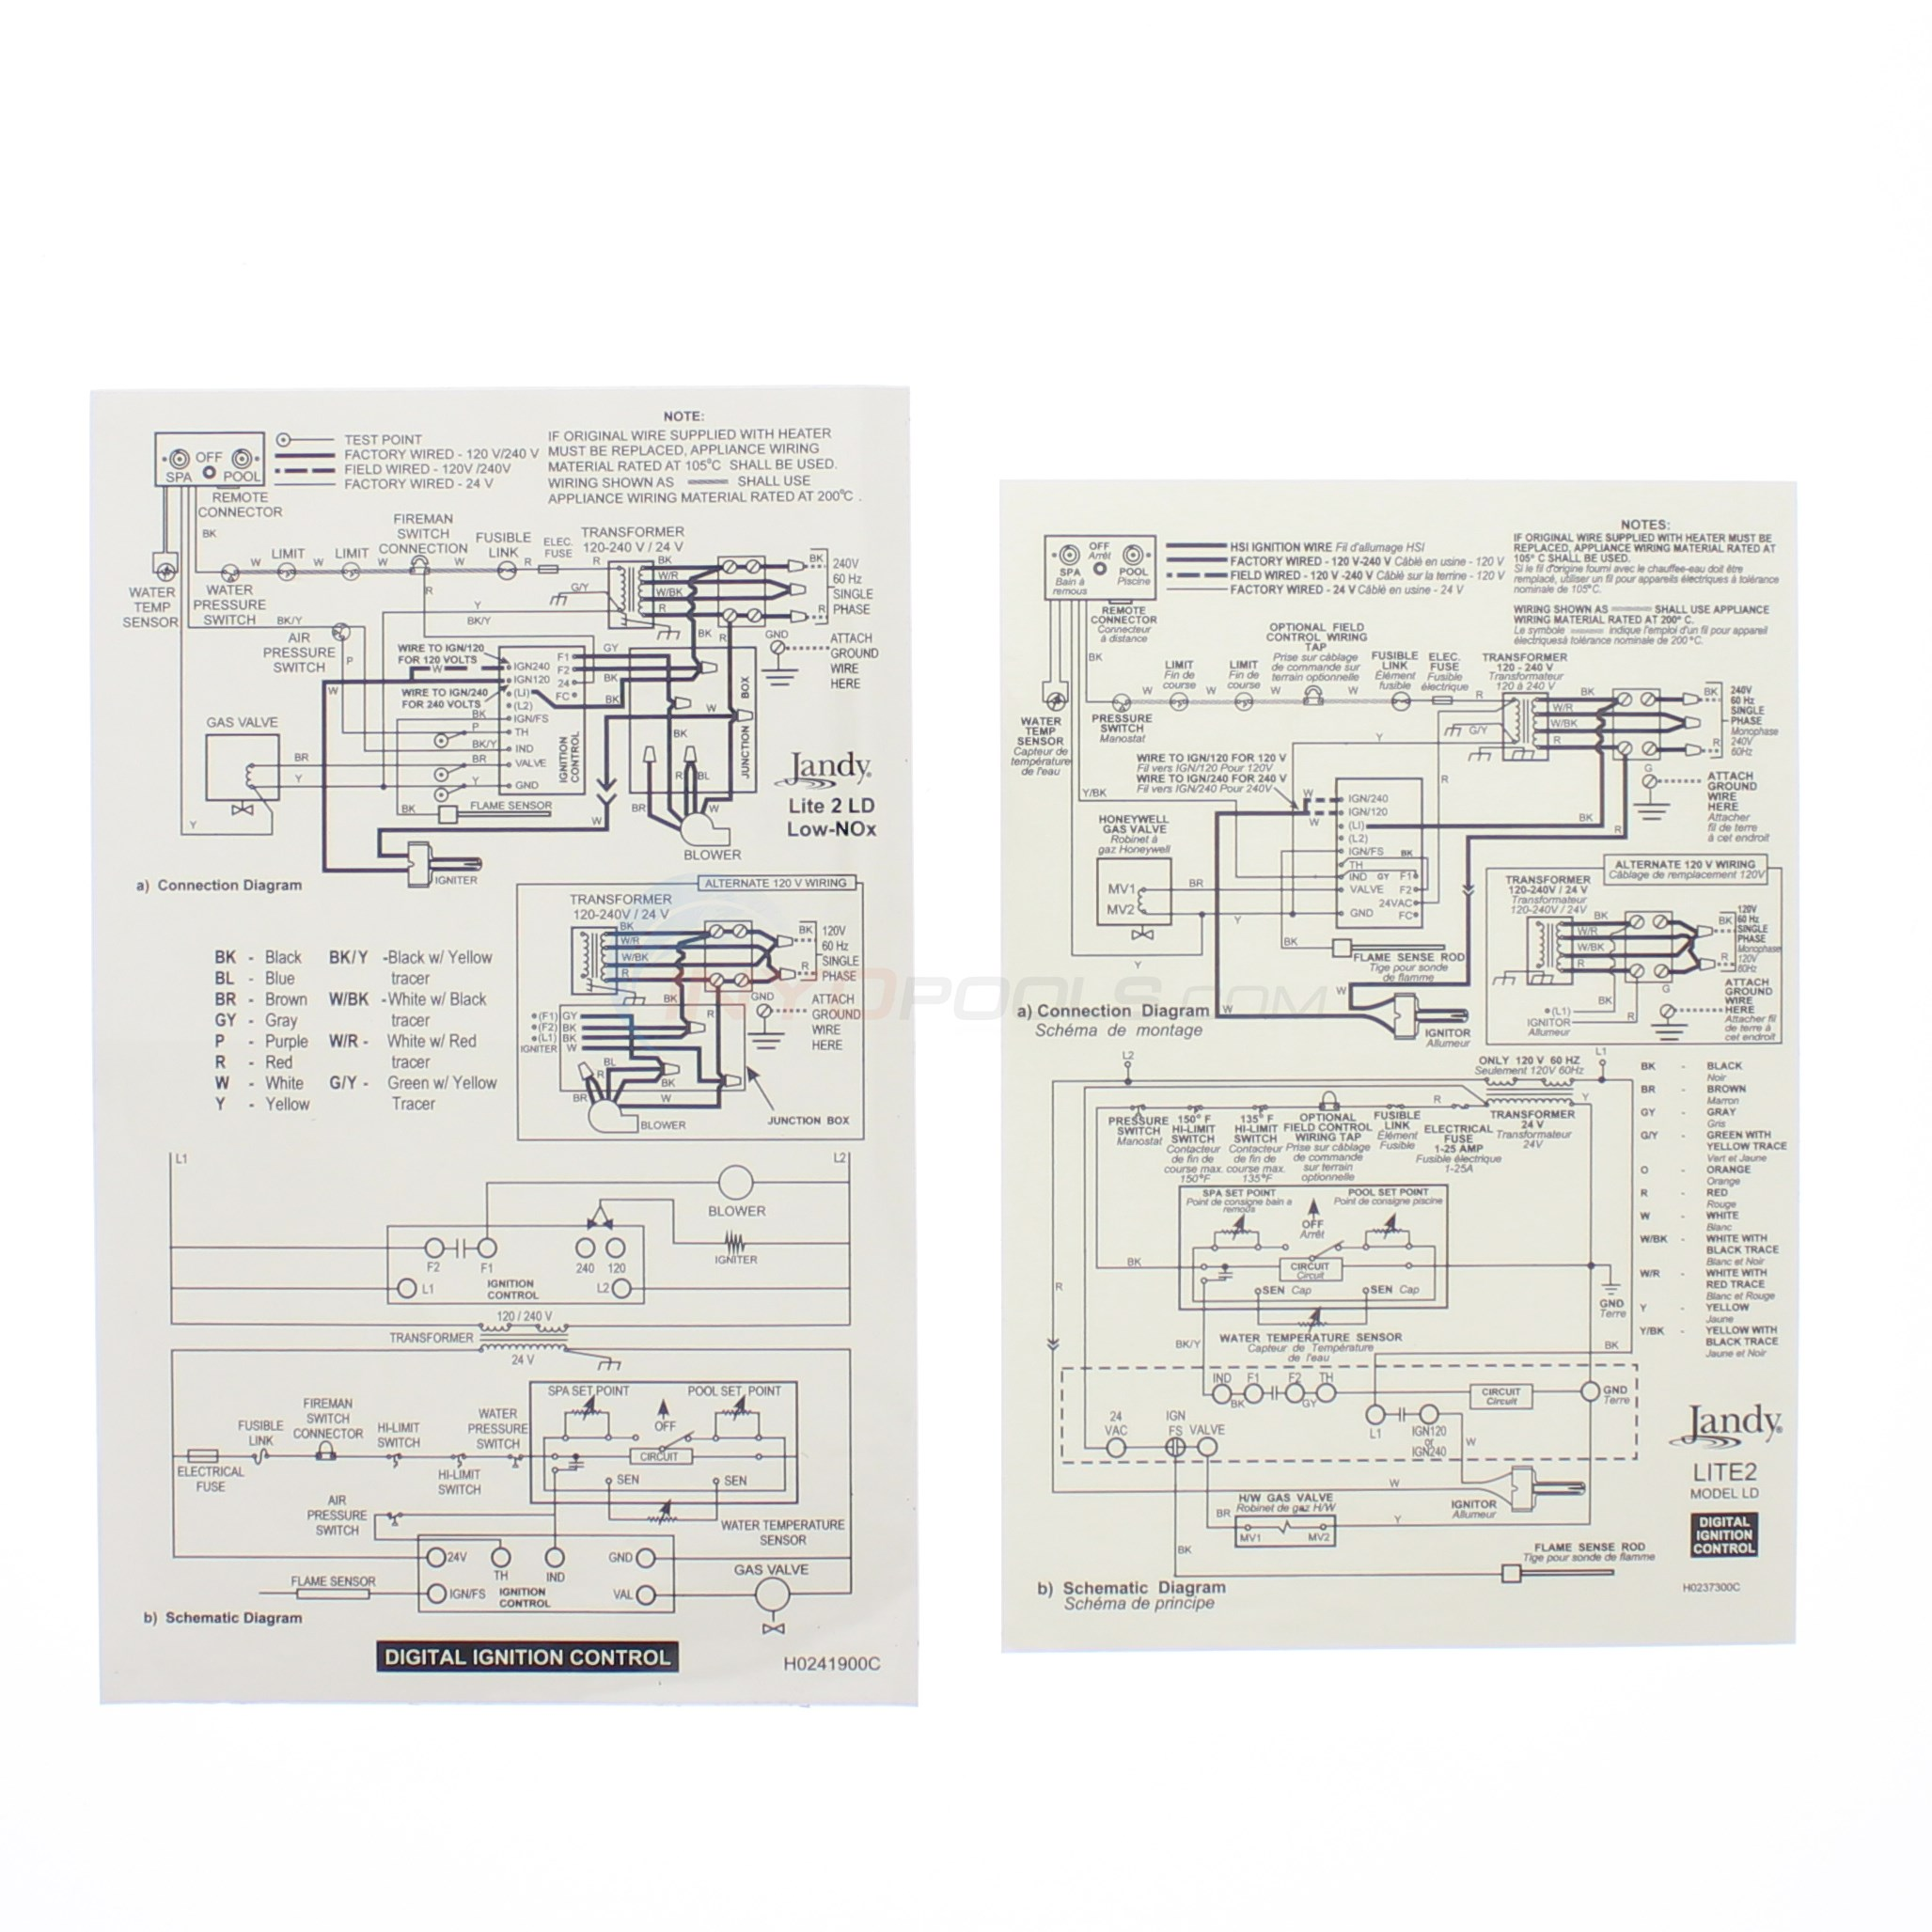 Zodiac Ignition Control Assembly R0408100 Inyopoolsrhinyopools: Fenwal Ignition System Wiring Diagram At Gmaili.net